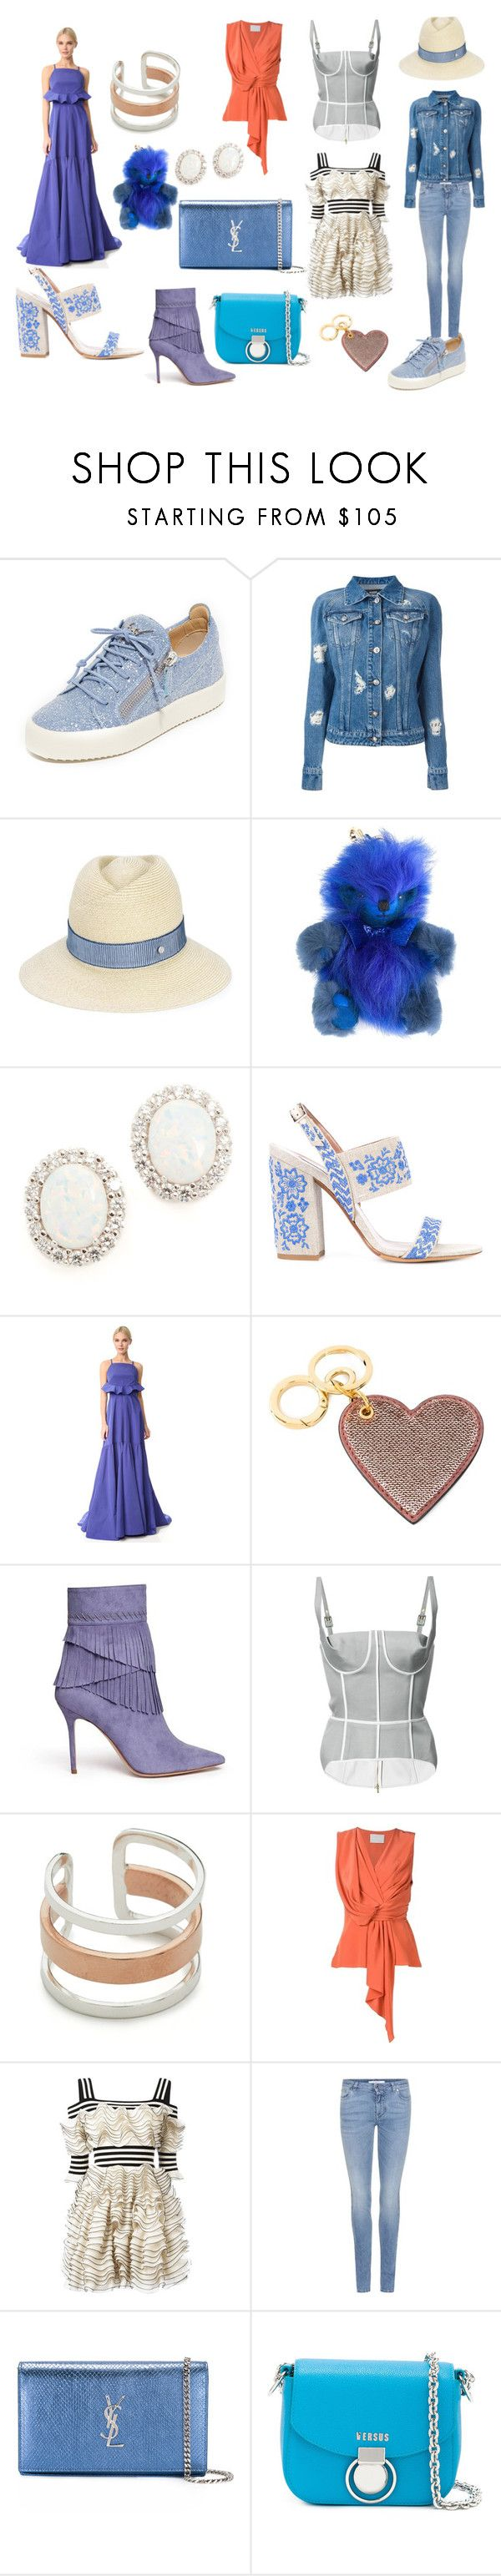 """chambray fashion"" by racheal-taylor on Polyvore featuring Giuseppe Zanotti, Versus, Maison Michel, Burberry, Kenneth Jay Lane, Tabitha Simmons, Lela Rose, Aperlaï, Thom Browne and Maya Magal"